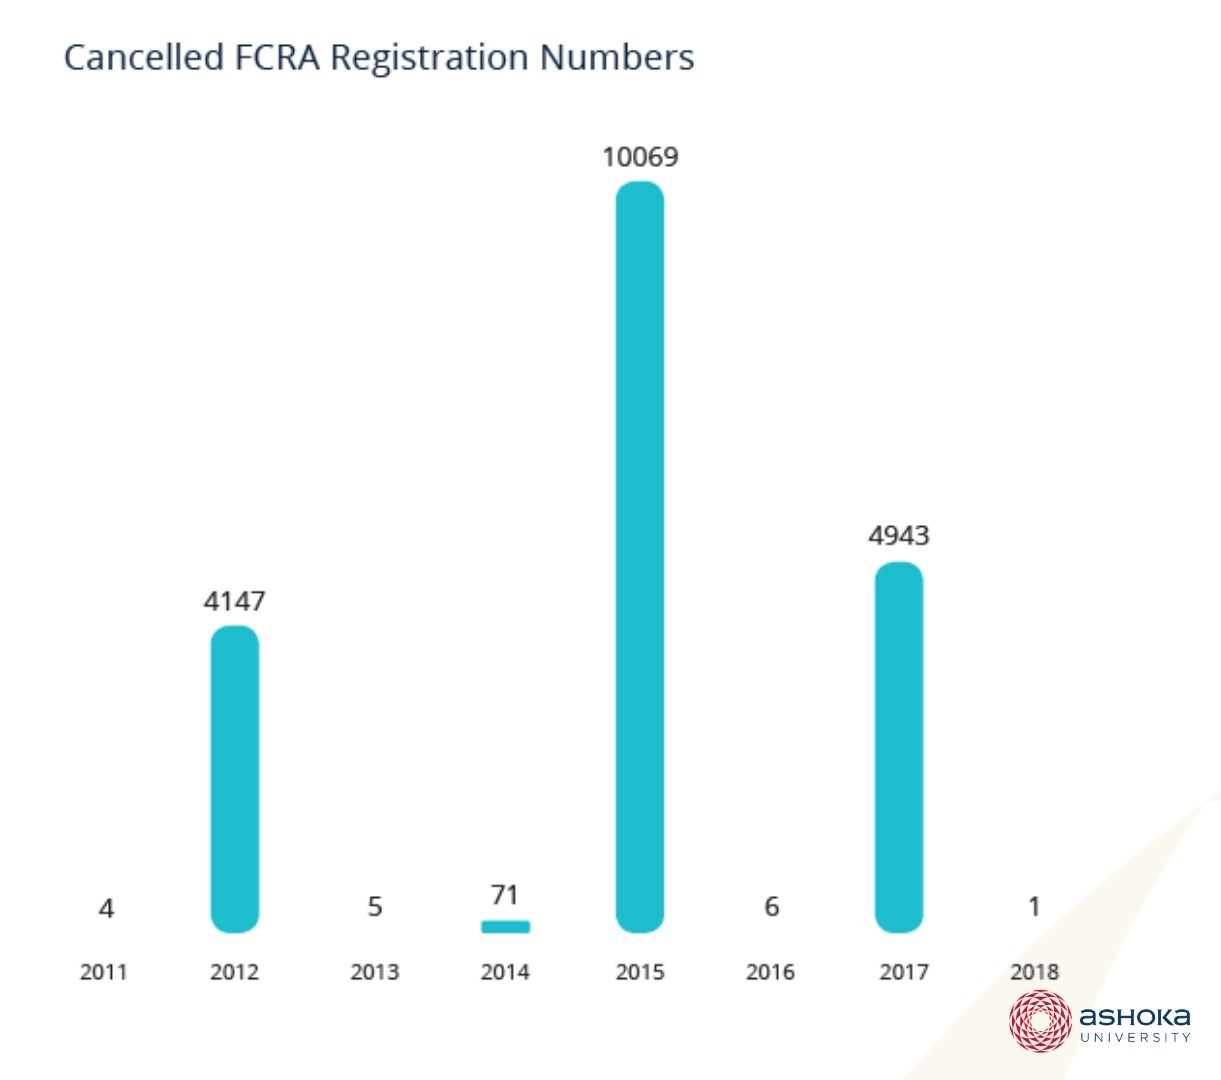 Graph showing the yearly number of cancelled FCRA registrations